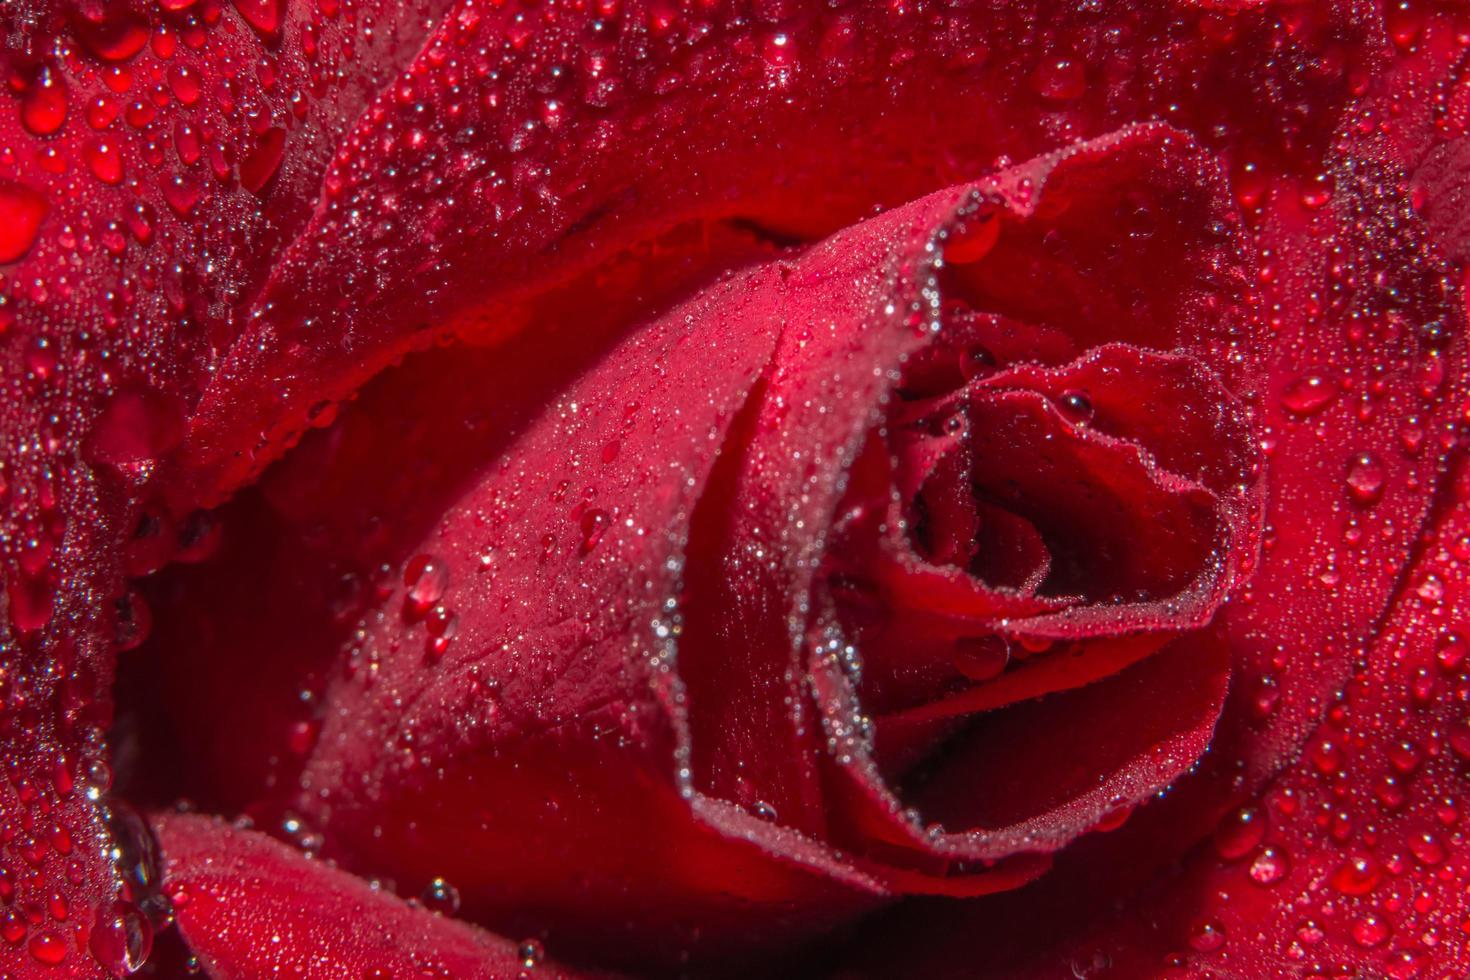 Water drops on a red rose photo